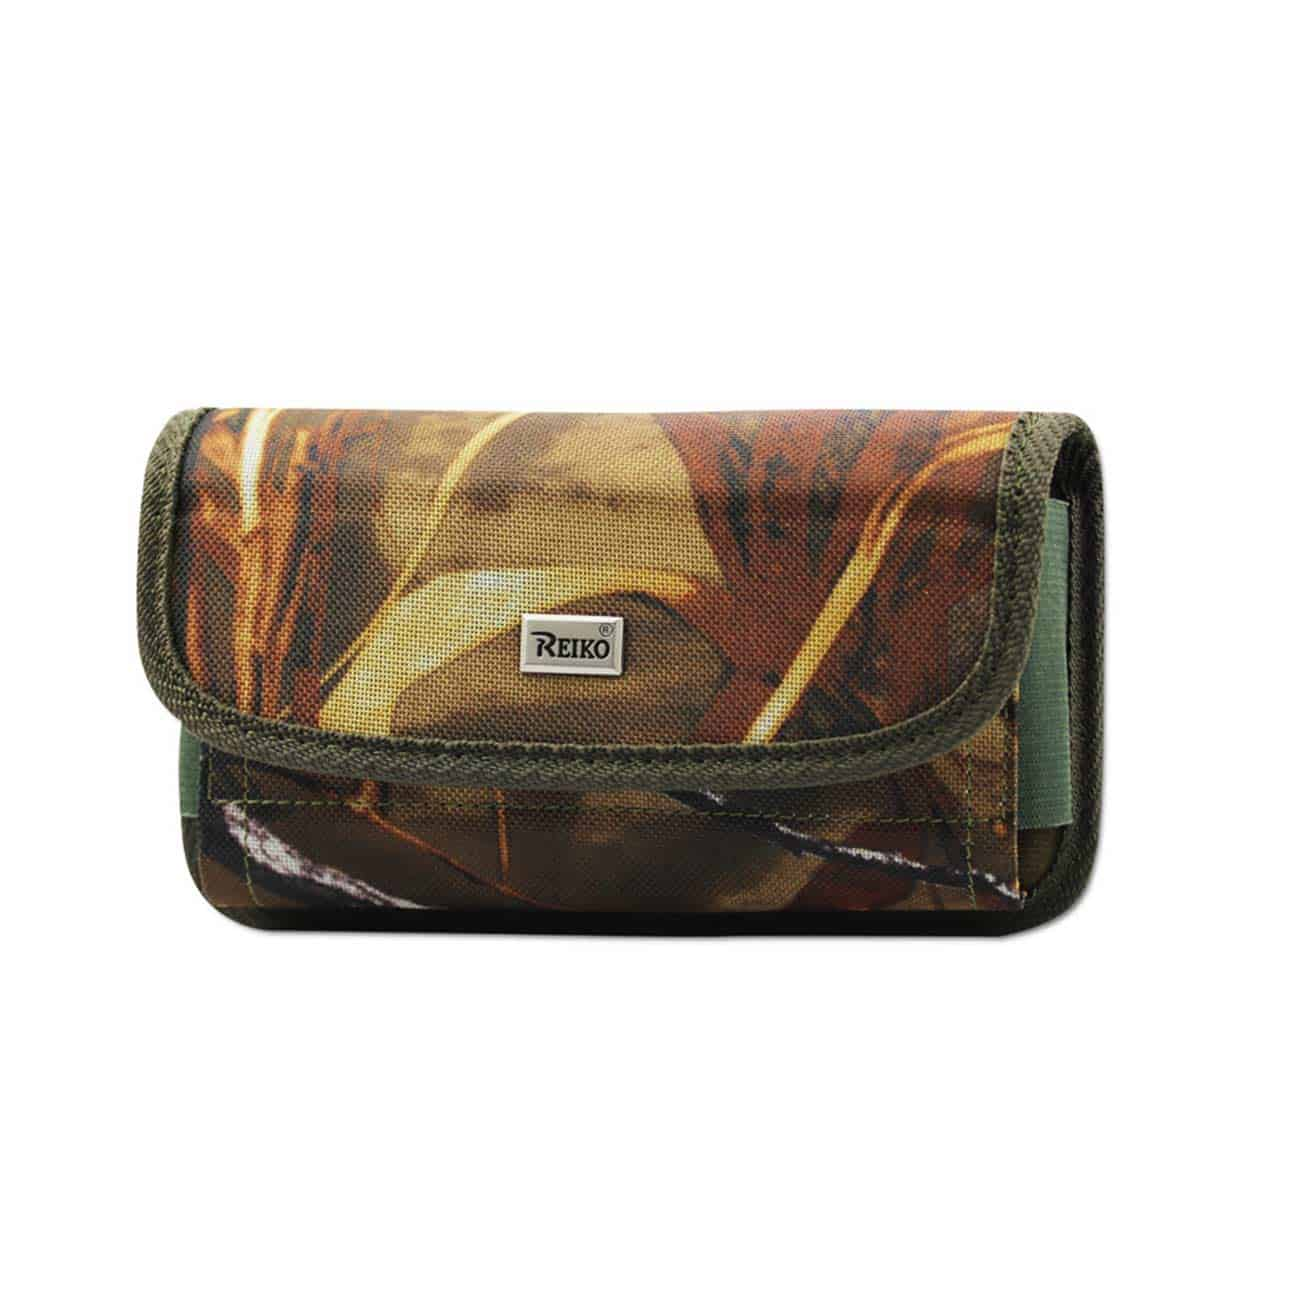 Horizontal Rugged Pouch With Velcro In Camouflage (3.5X2.1X1.1 Inches)